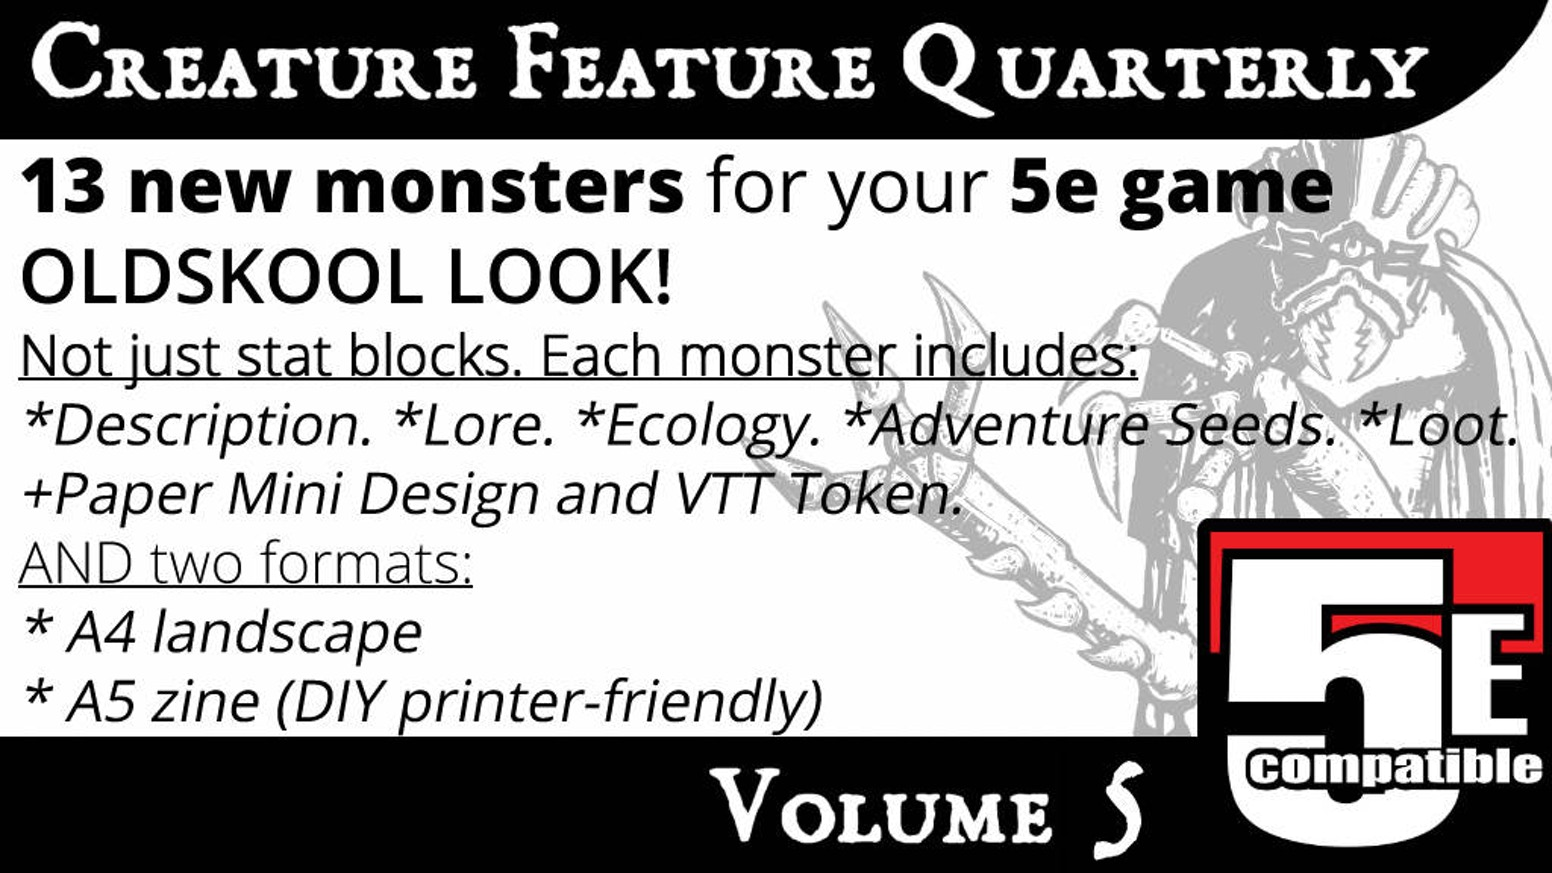 Creature Feature Quarterly Vol  5 (5e compatible) by Jeremy